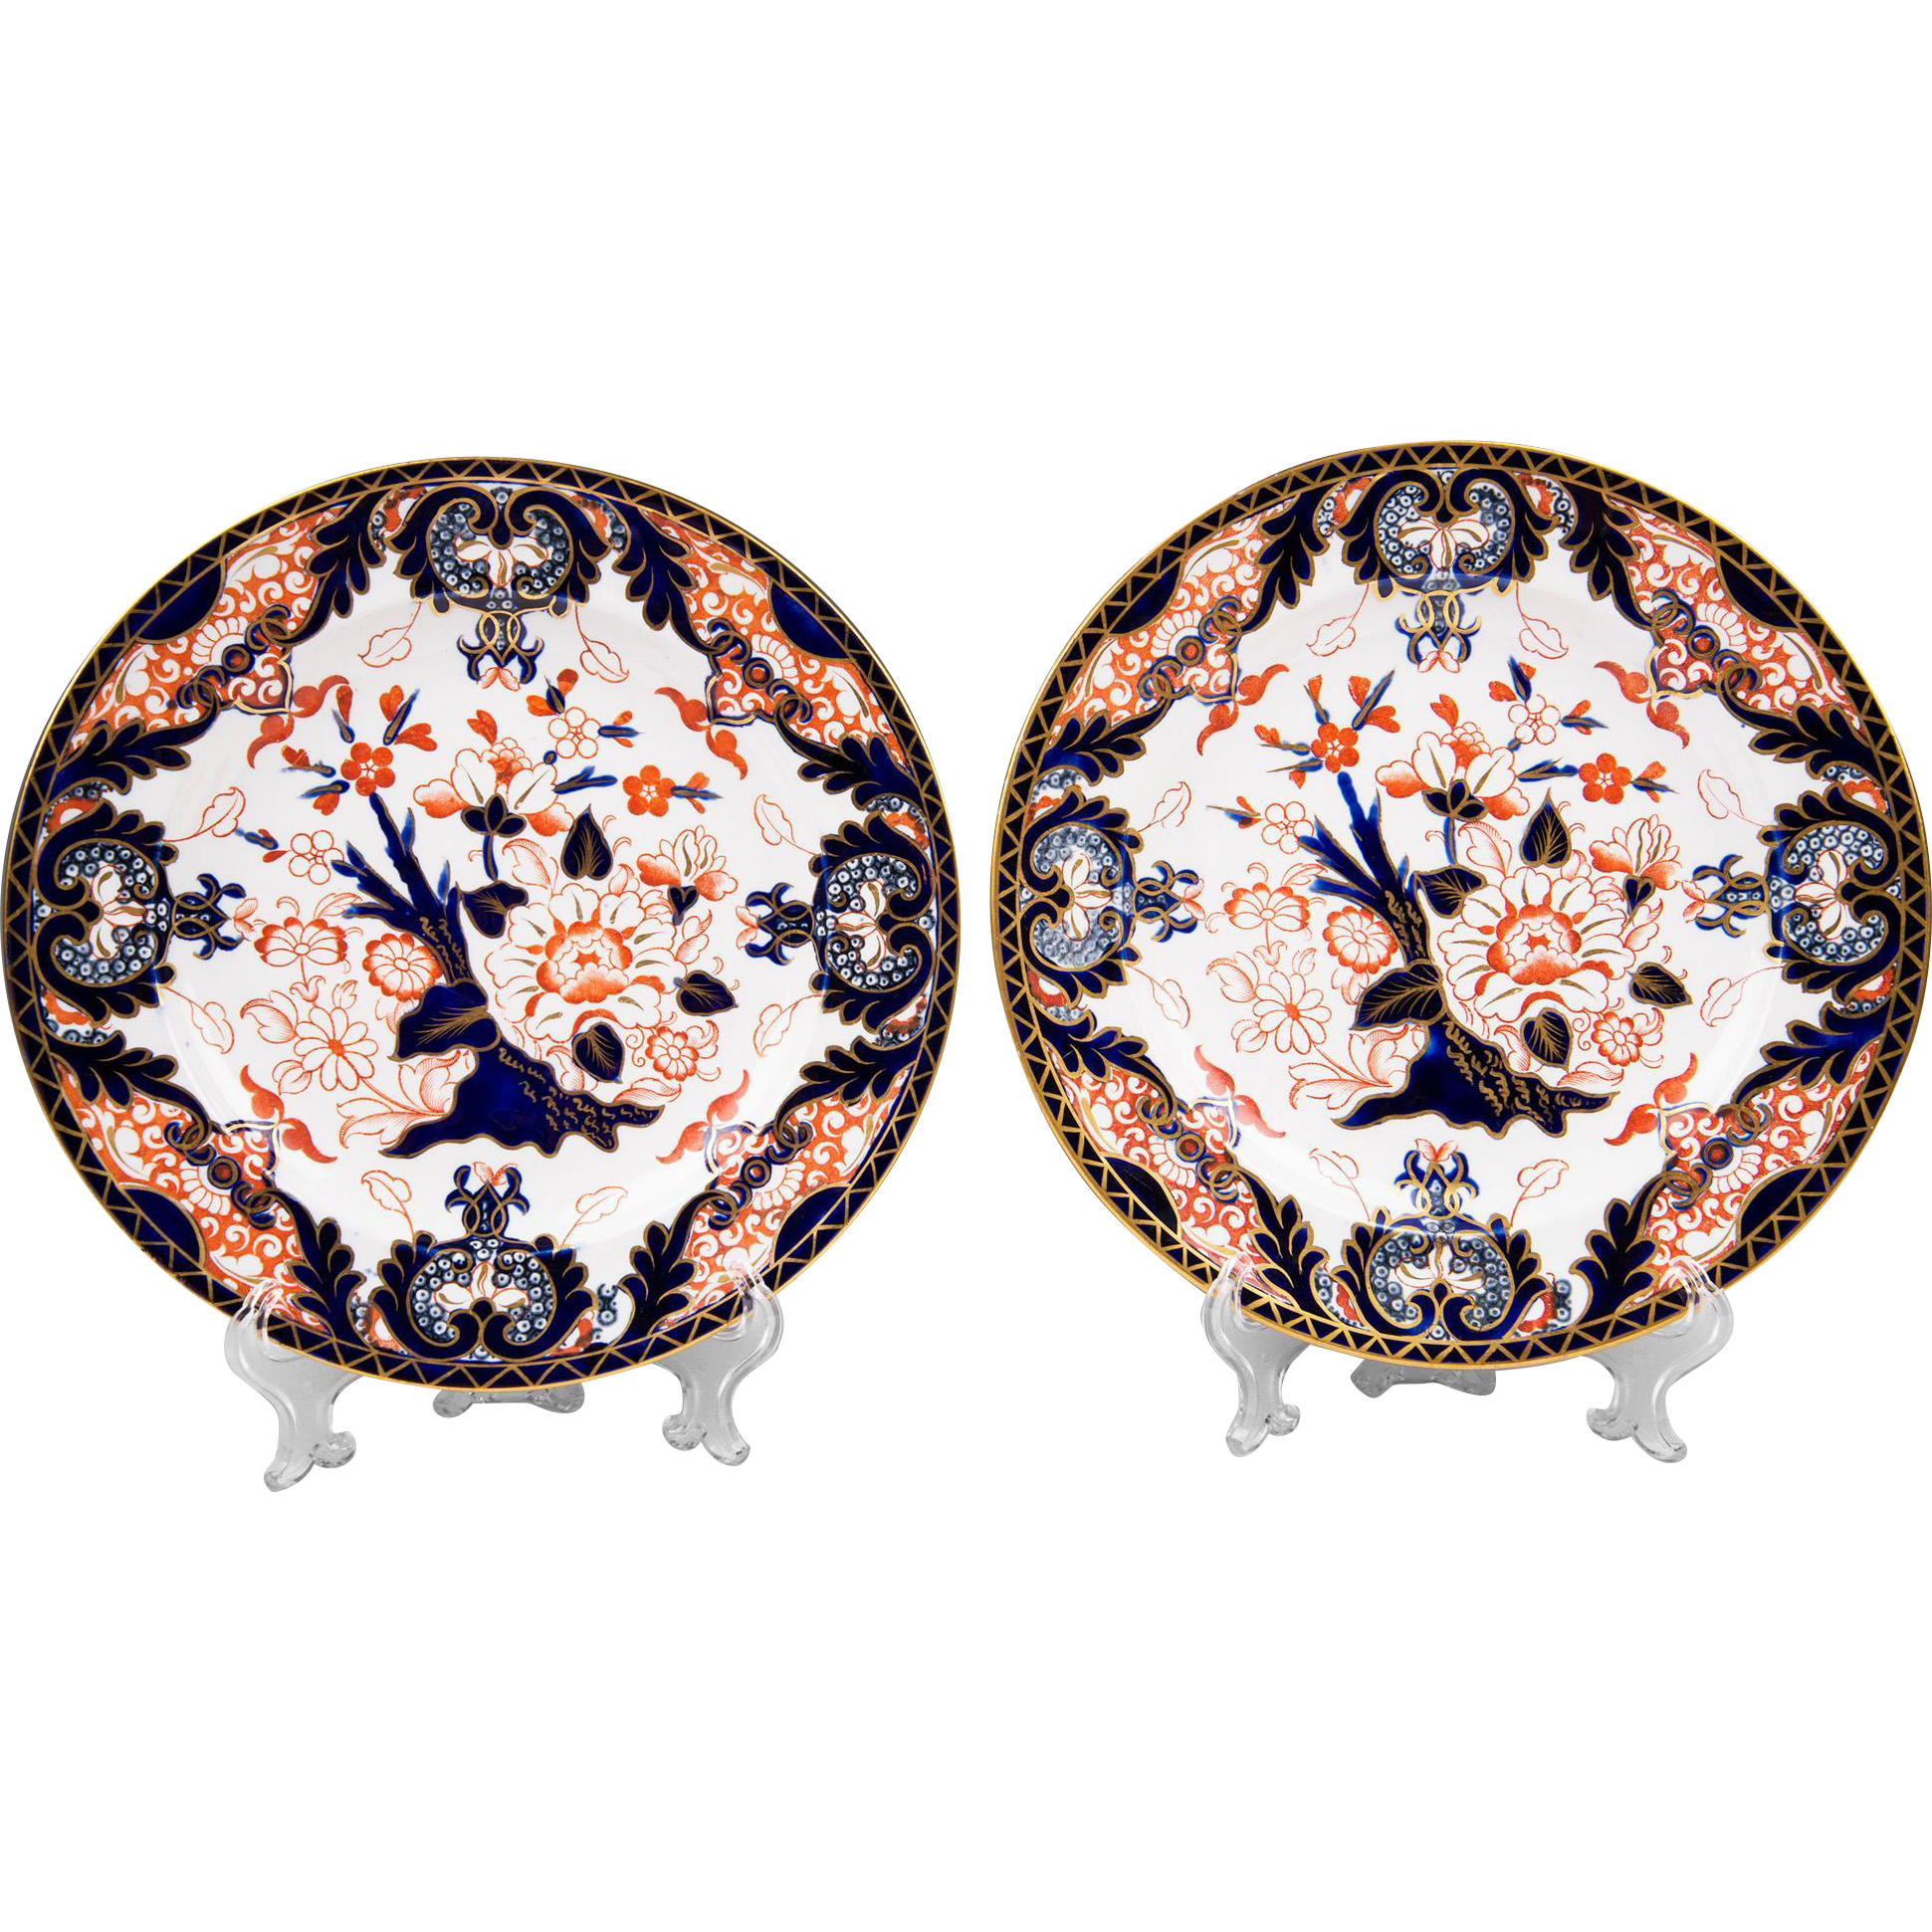 Pair of King's Pattern Royal Crown Derby Dinner Plates